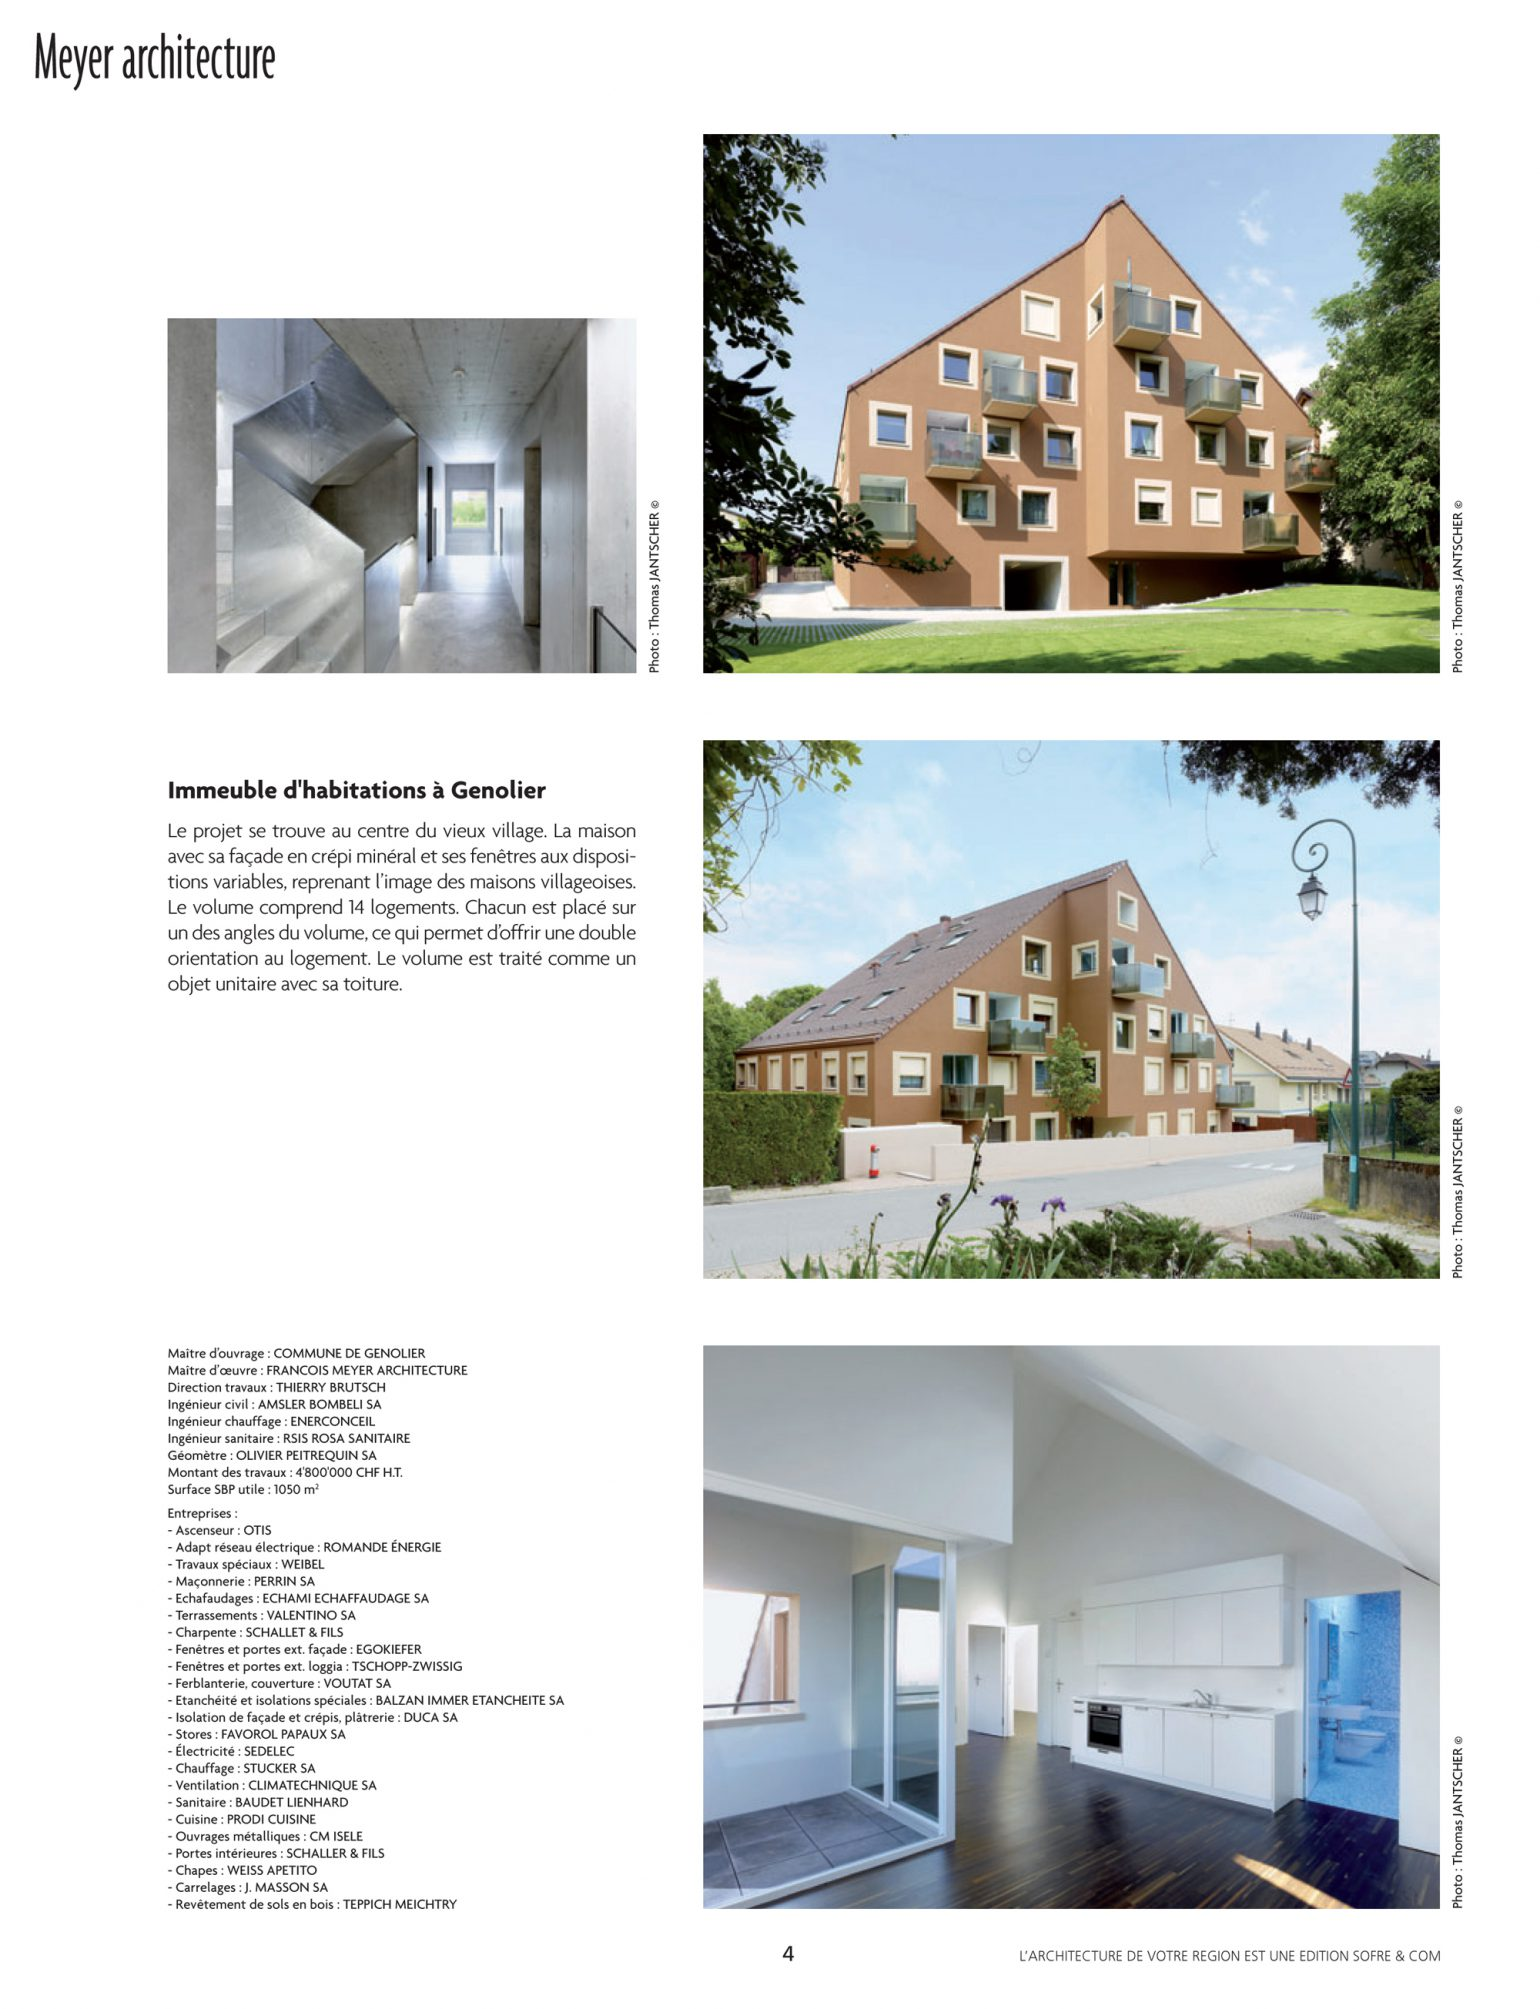 2014_l'architecture_de_votre_region_meyer_architecture_sion_03